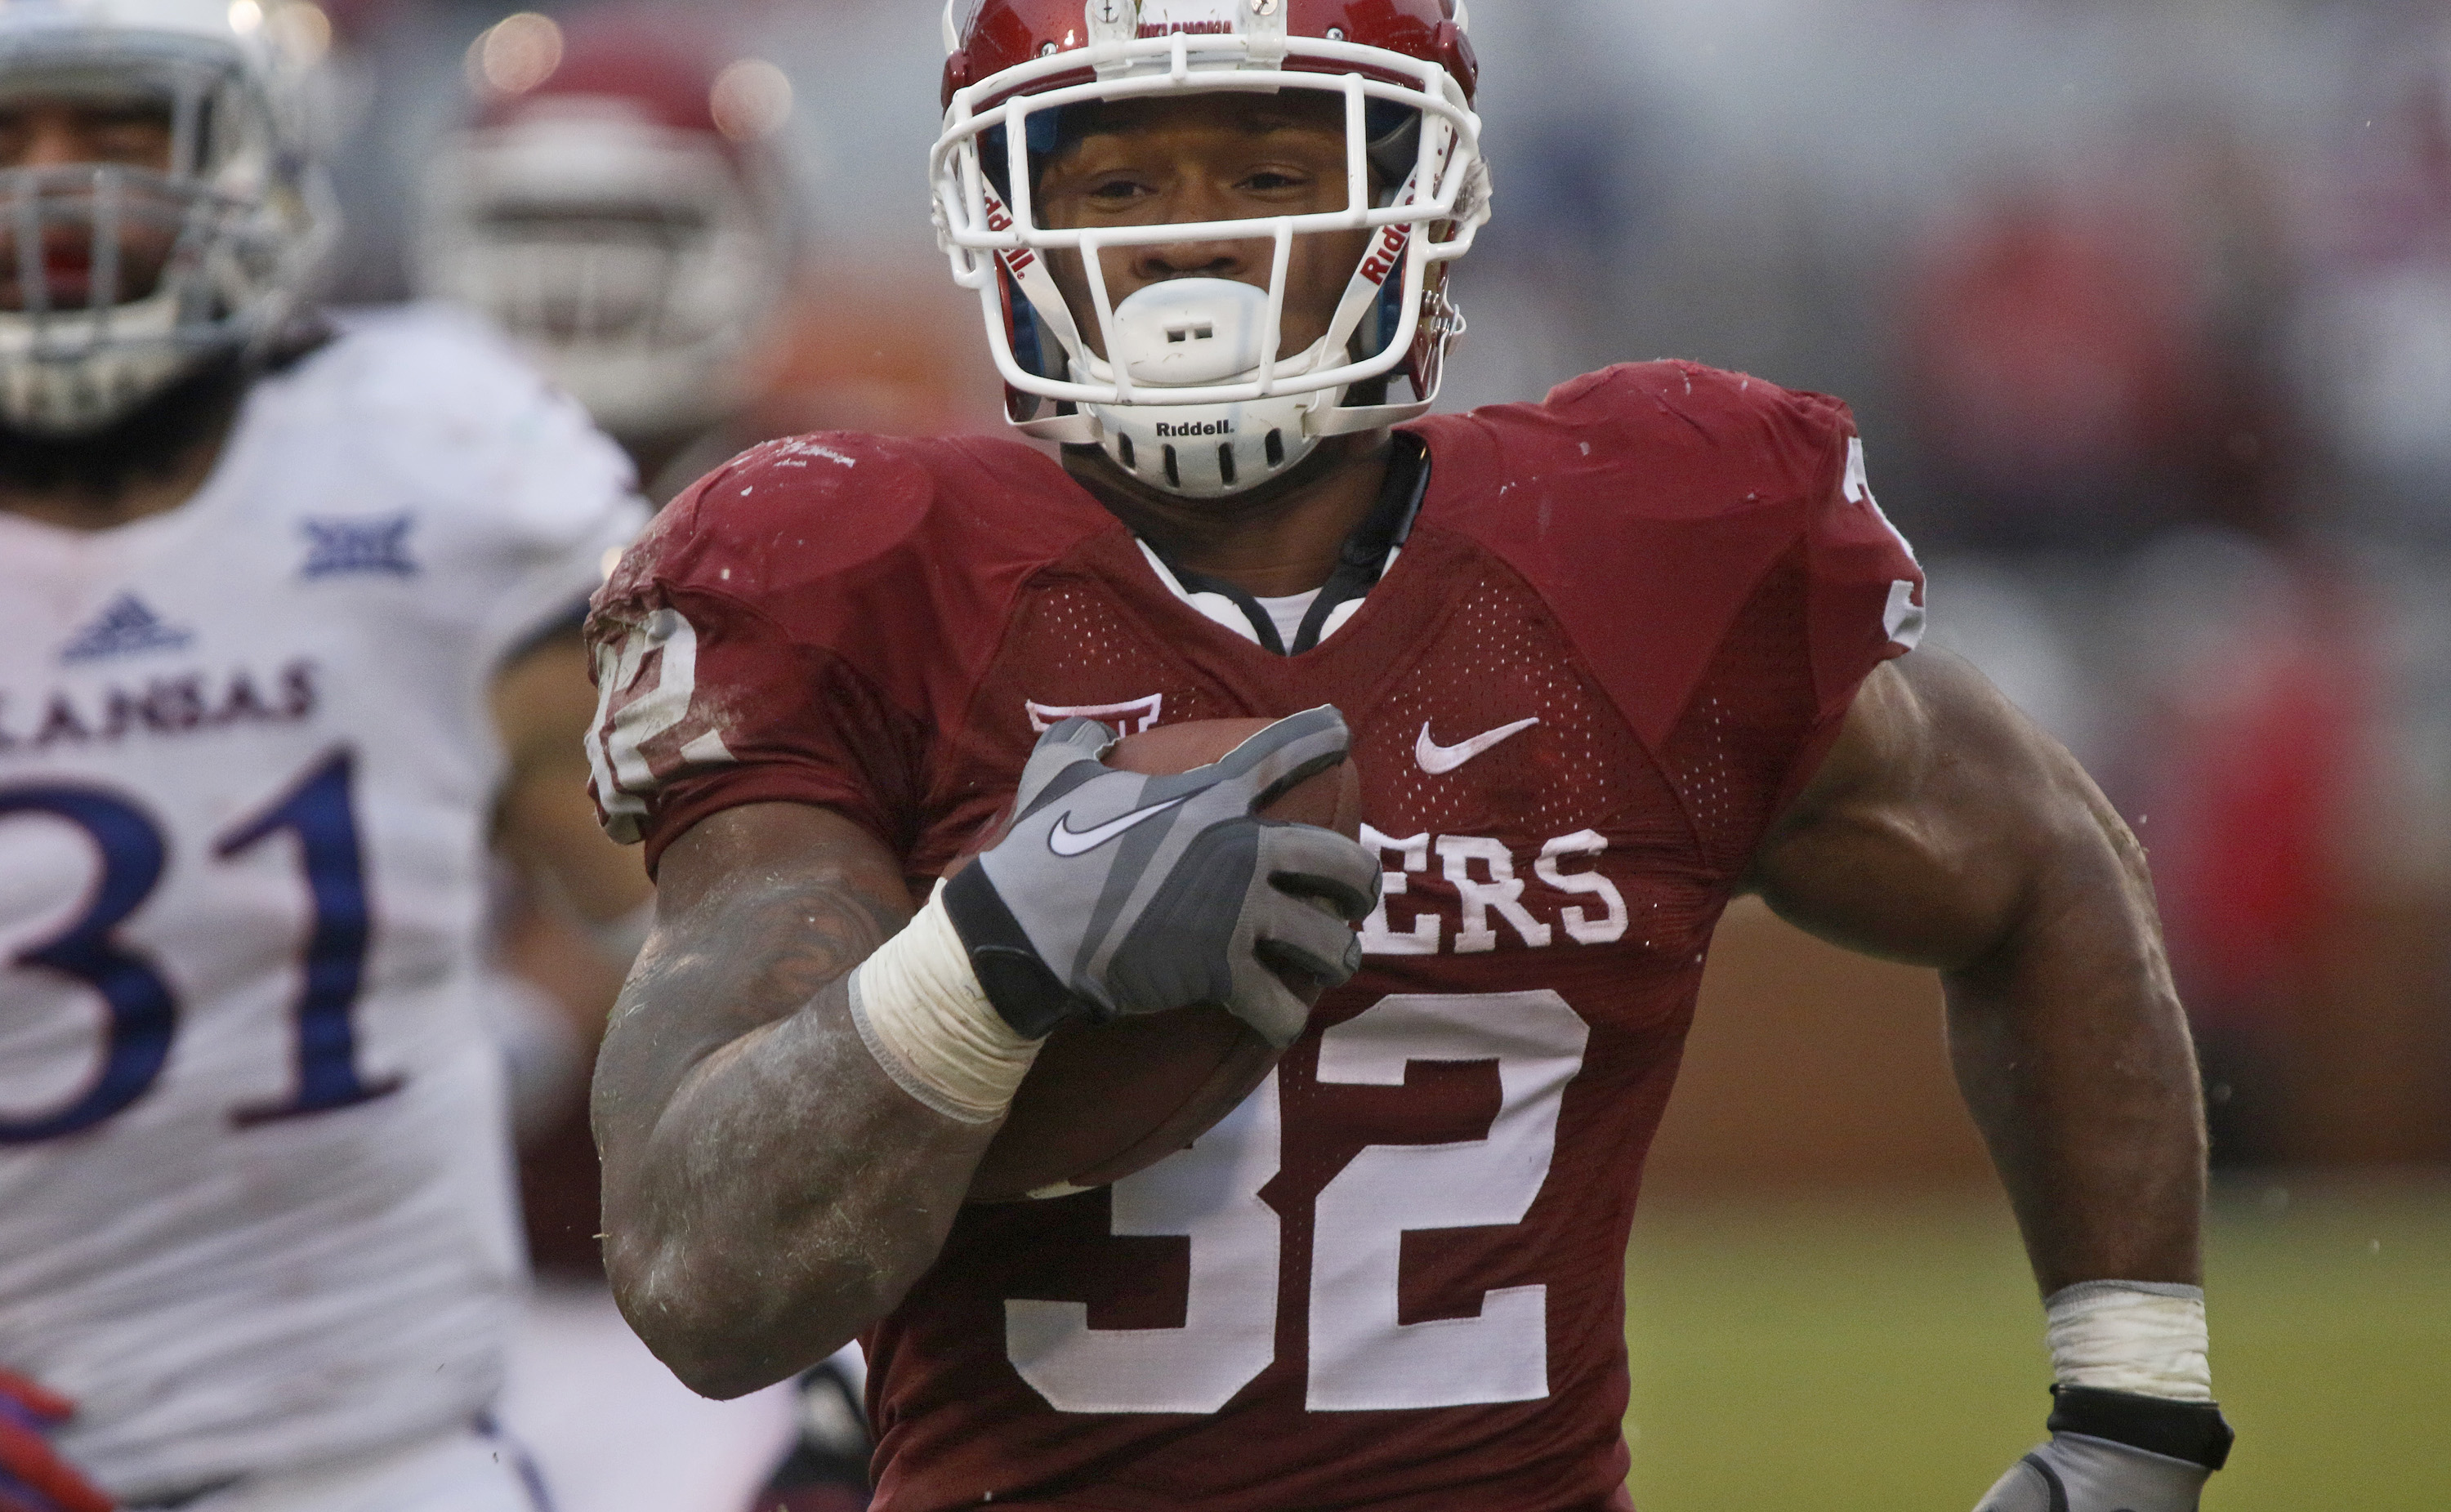 Jealous of Oklahoma's Samaje Perine? Well, K-State might have found its own surprise freshman running back in Alex Barnes.